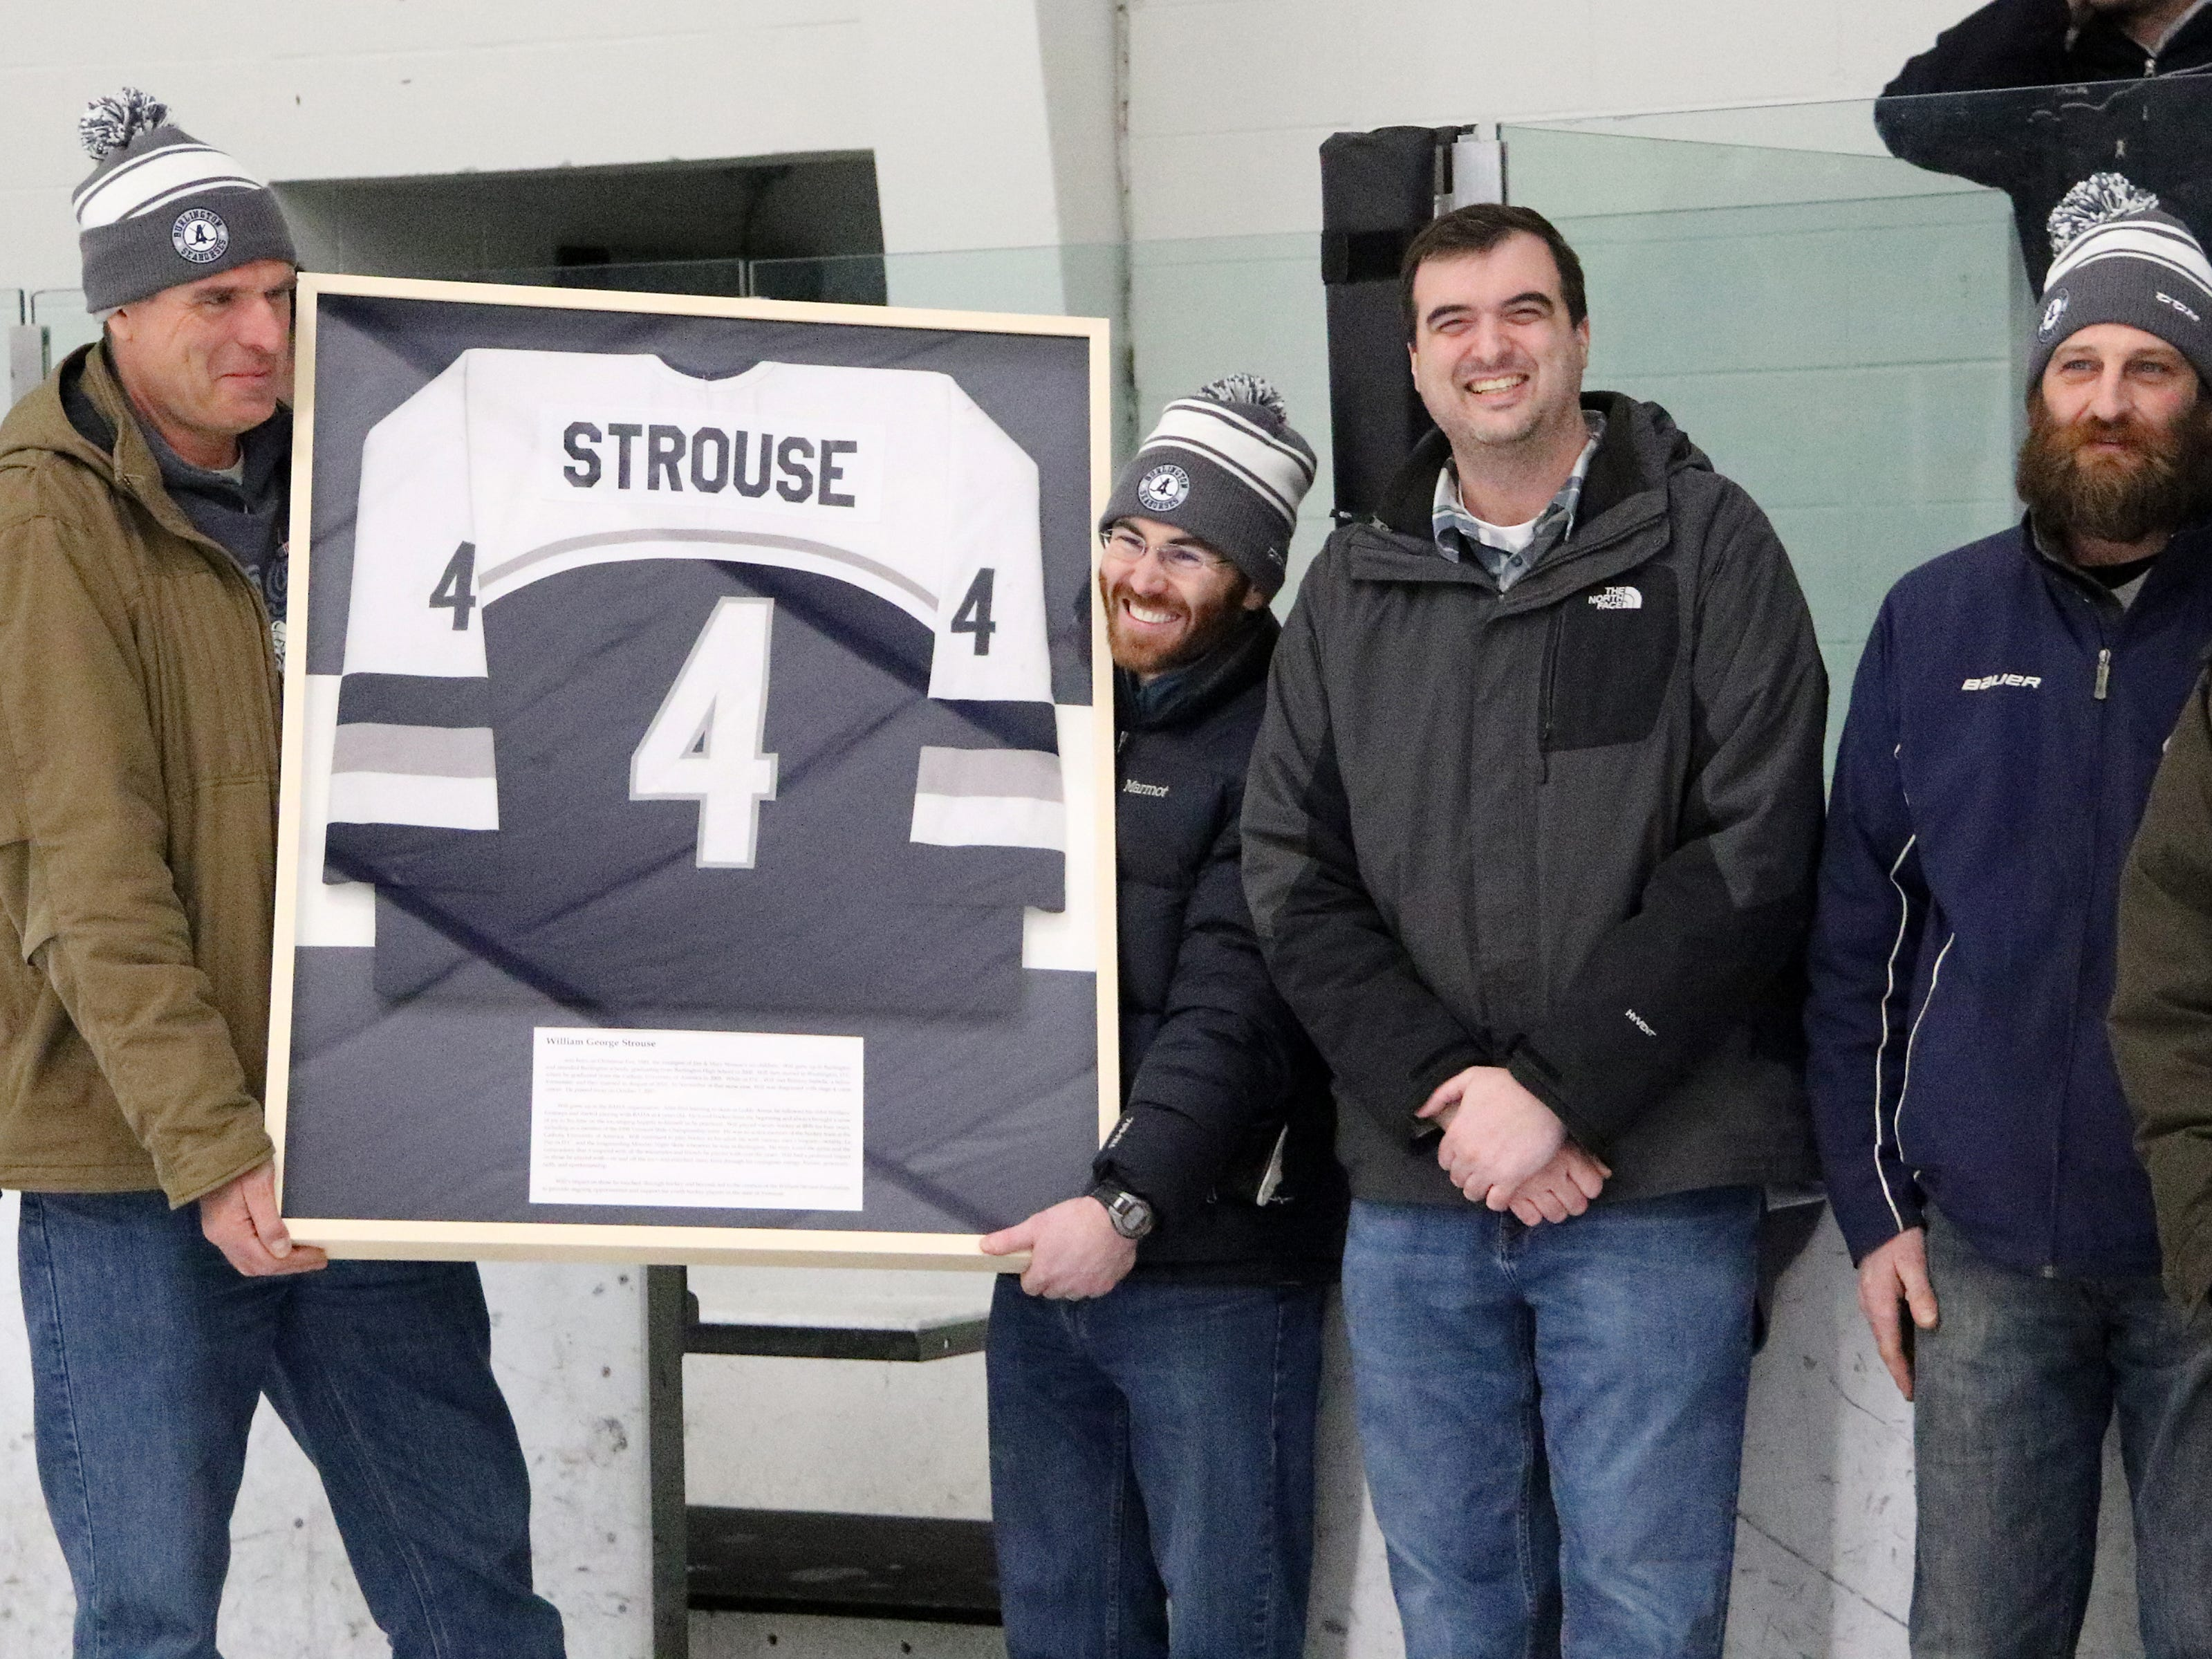 """Friends of the late Will Strouse present his High School Jersey to his family in a pre game ceremony honoring the former BHS hockey player before Saturdays """"BAHA Cup"""" game. Strouse passed away in 2017 from colon cancer and his jersey will now be displayed permanently at Leddy Arena. An annual Alumni and BAHA Cup game will also be played in his honor to help raise money for the """"Will Strouse Foundation"""". Please visit bahabobcats.com for more information about Will and the foundation."""